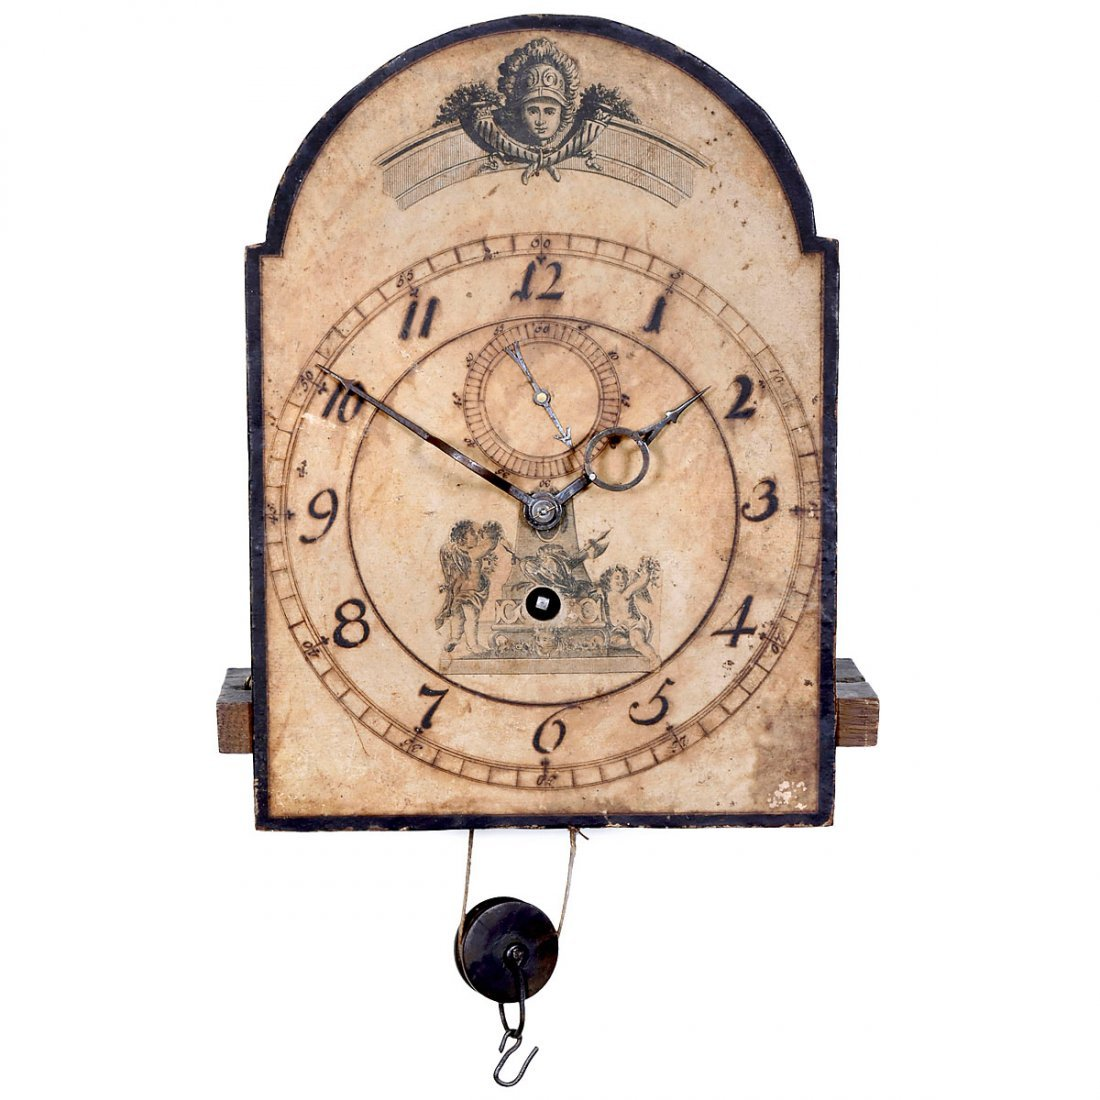 Southern German Longcase Clock Movement, c. 1760